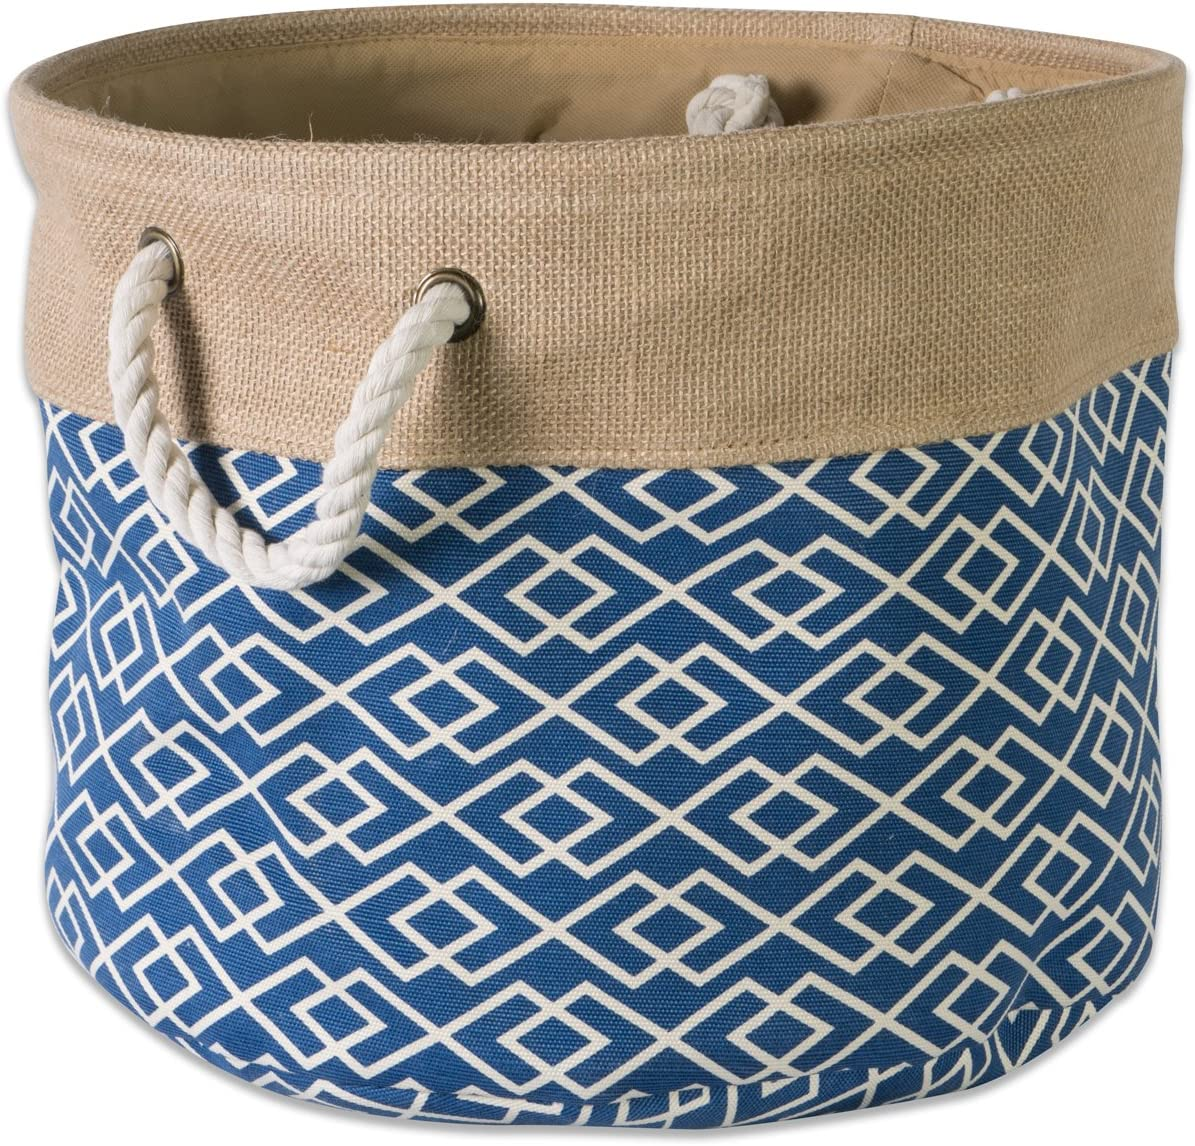 """DII CAMZ37144Collapsible Burlap Storage Basket or Bin with Durable Cotton Handles, Home Organizational Solution for Office, Bedroom, Closet, Toys, & Laundry (Medium Round - 15x12""""), Diamond Navy"""